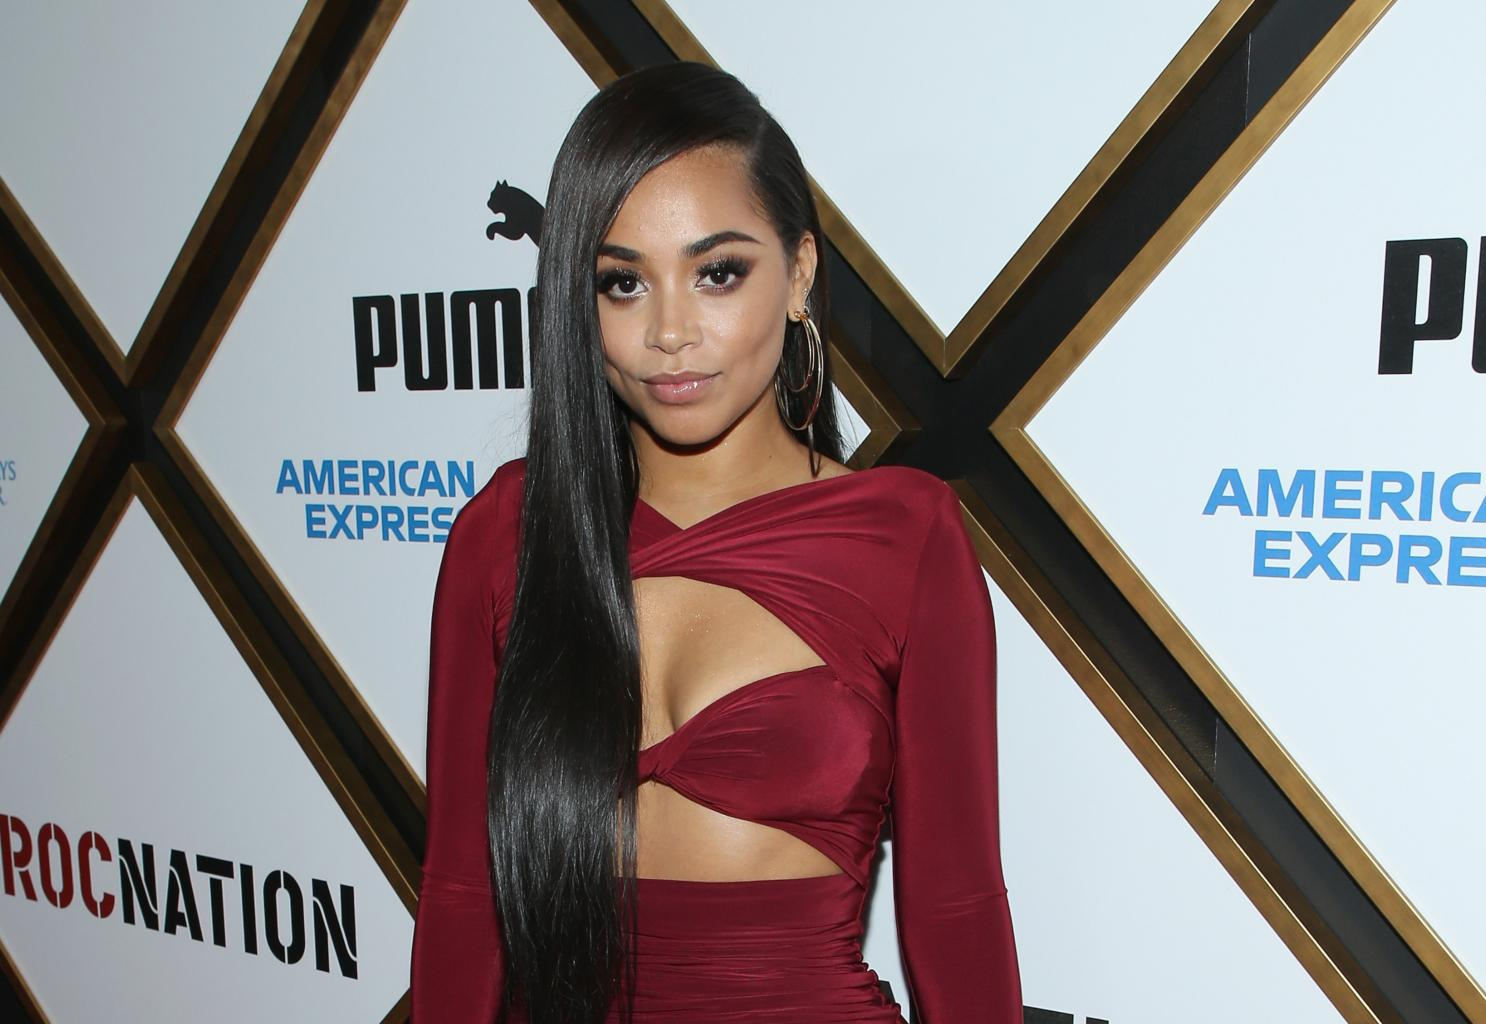 Lauren London Addresses Her Moving Forward With Grief